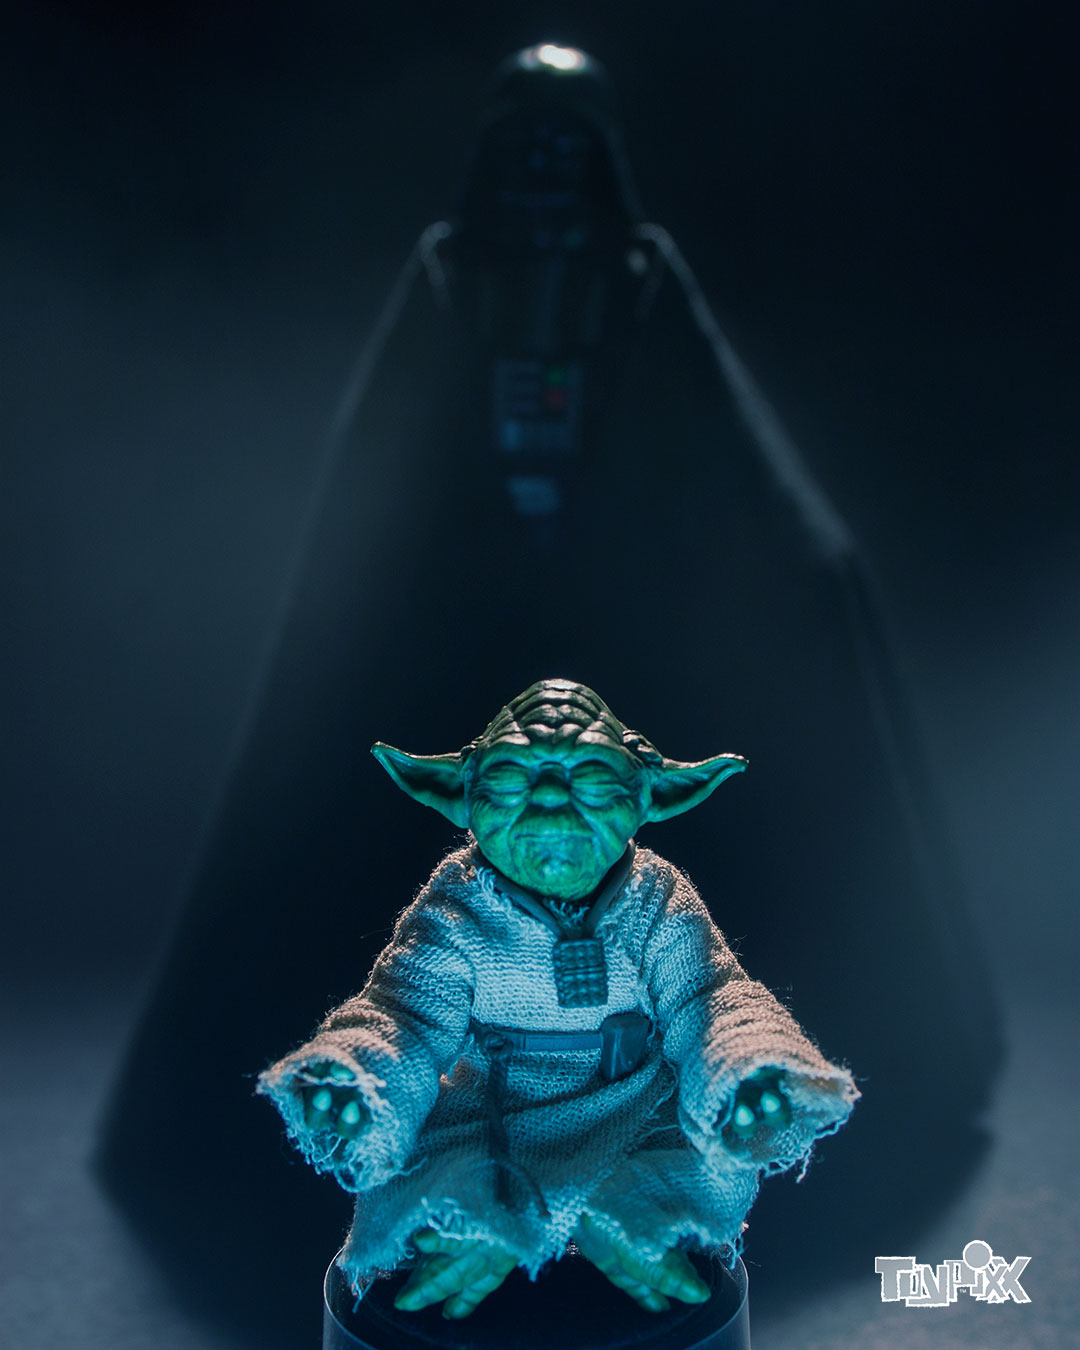 Toypixx Star Wars Black Series Yoda and Darth Vader Toy Photography